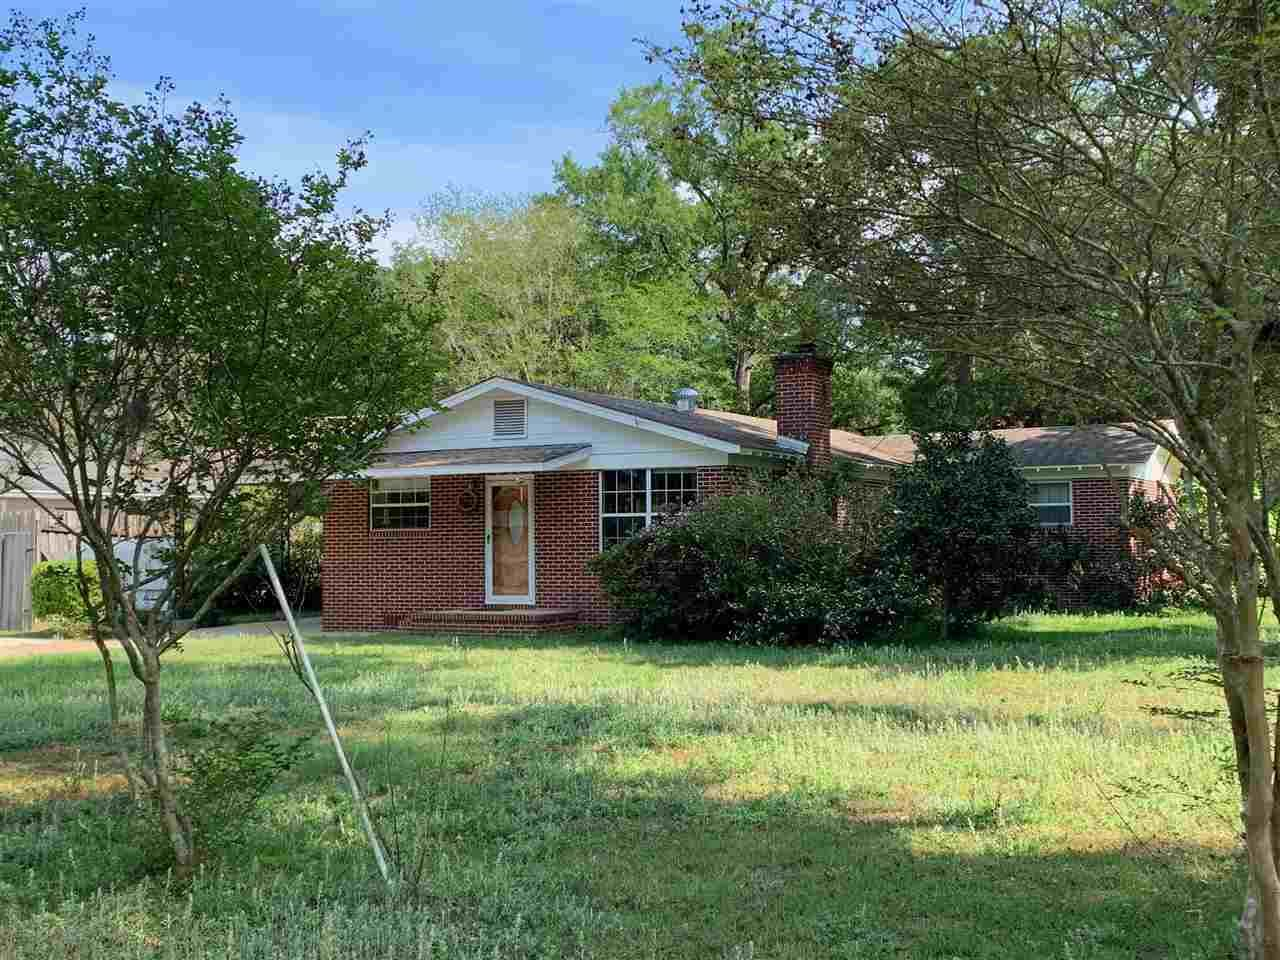 Photo of 2005 Faulk Drive, TALLAHASSEE, FL 32303-7309 (MLS # 317474)